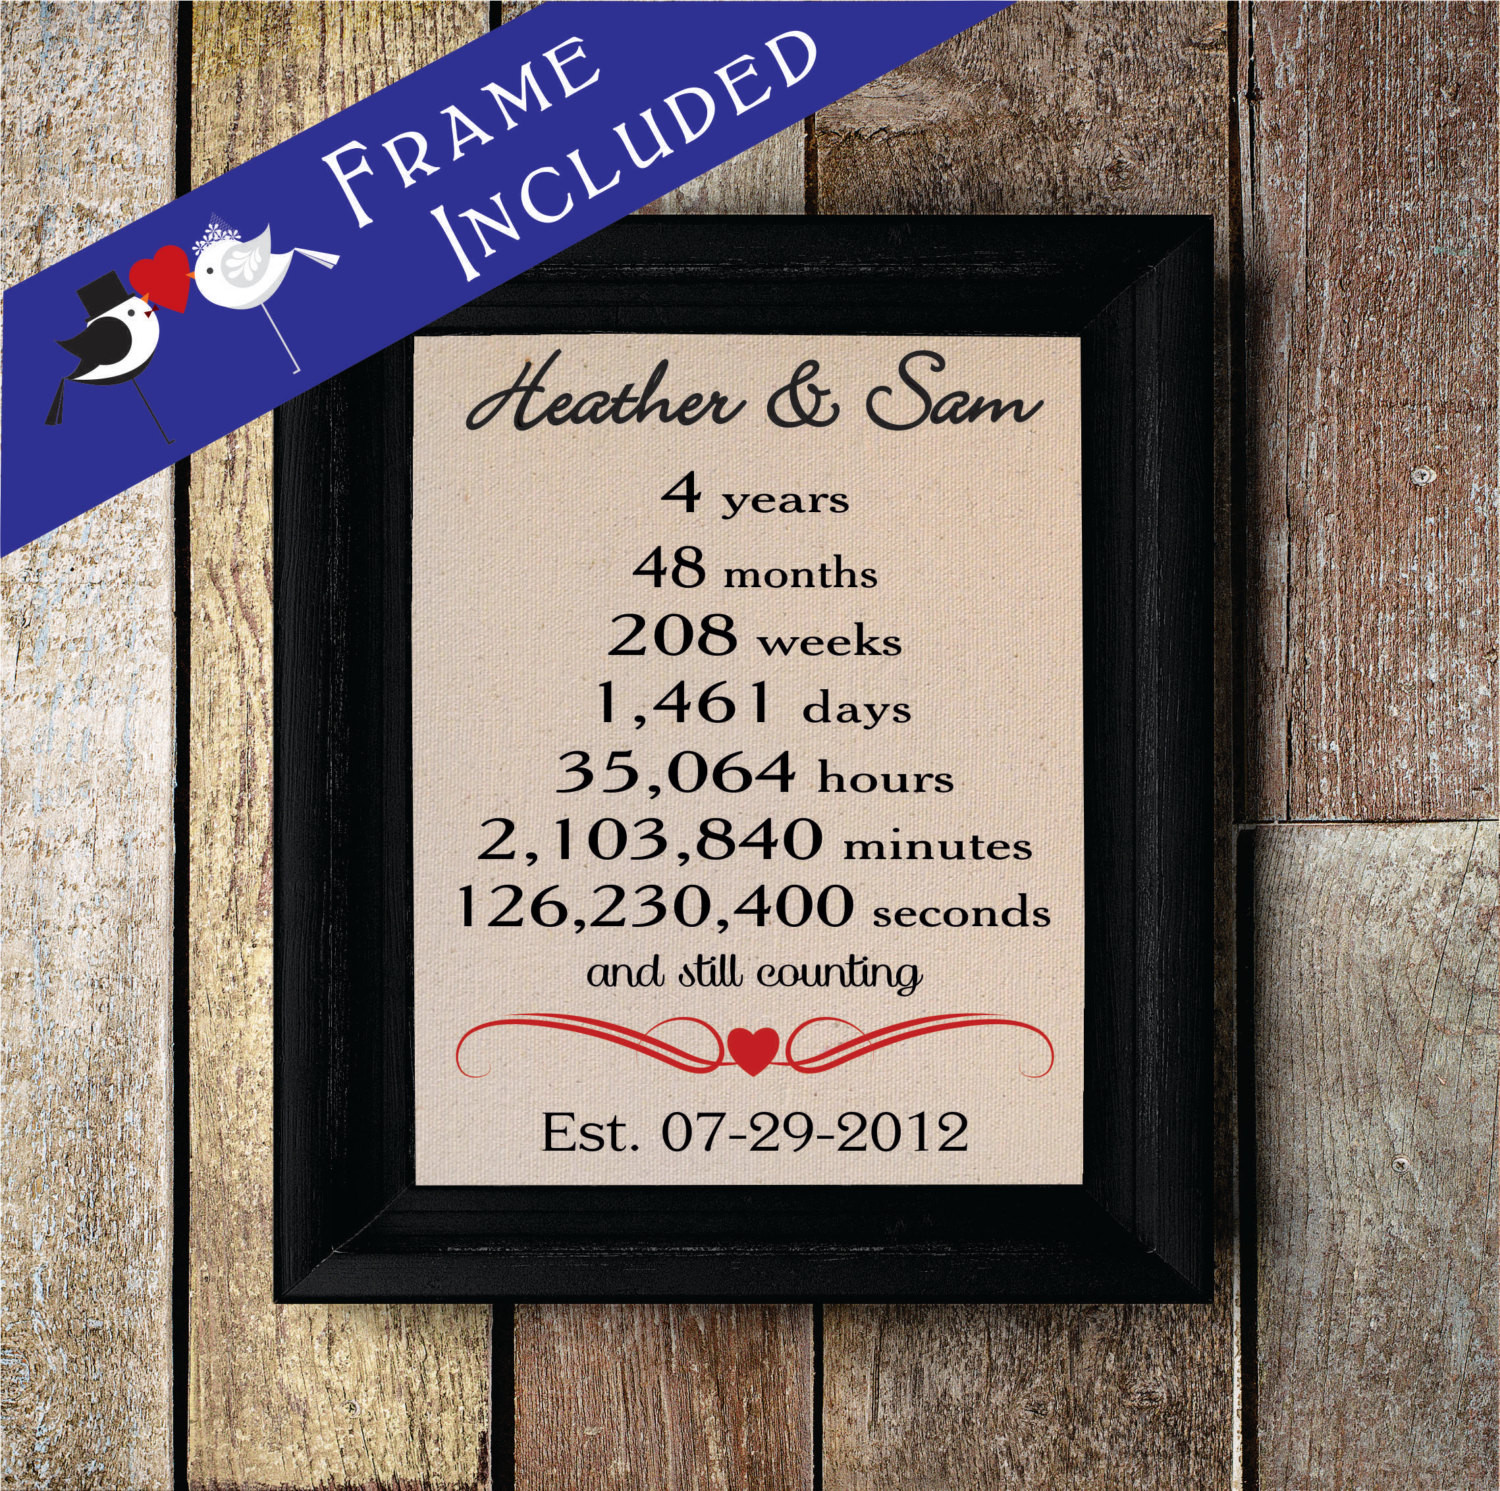 Best ideas about 4 Year Wedding Anniversary Gift Ideas . Save or Pin Fourth Wedding Anniversary 4th Anniversary Gift 4 year Now.